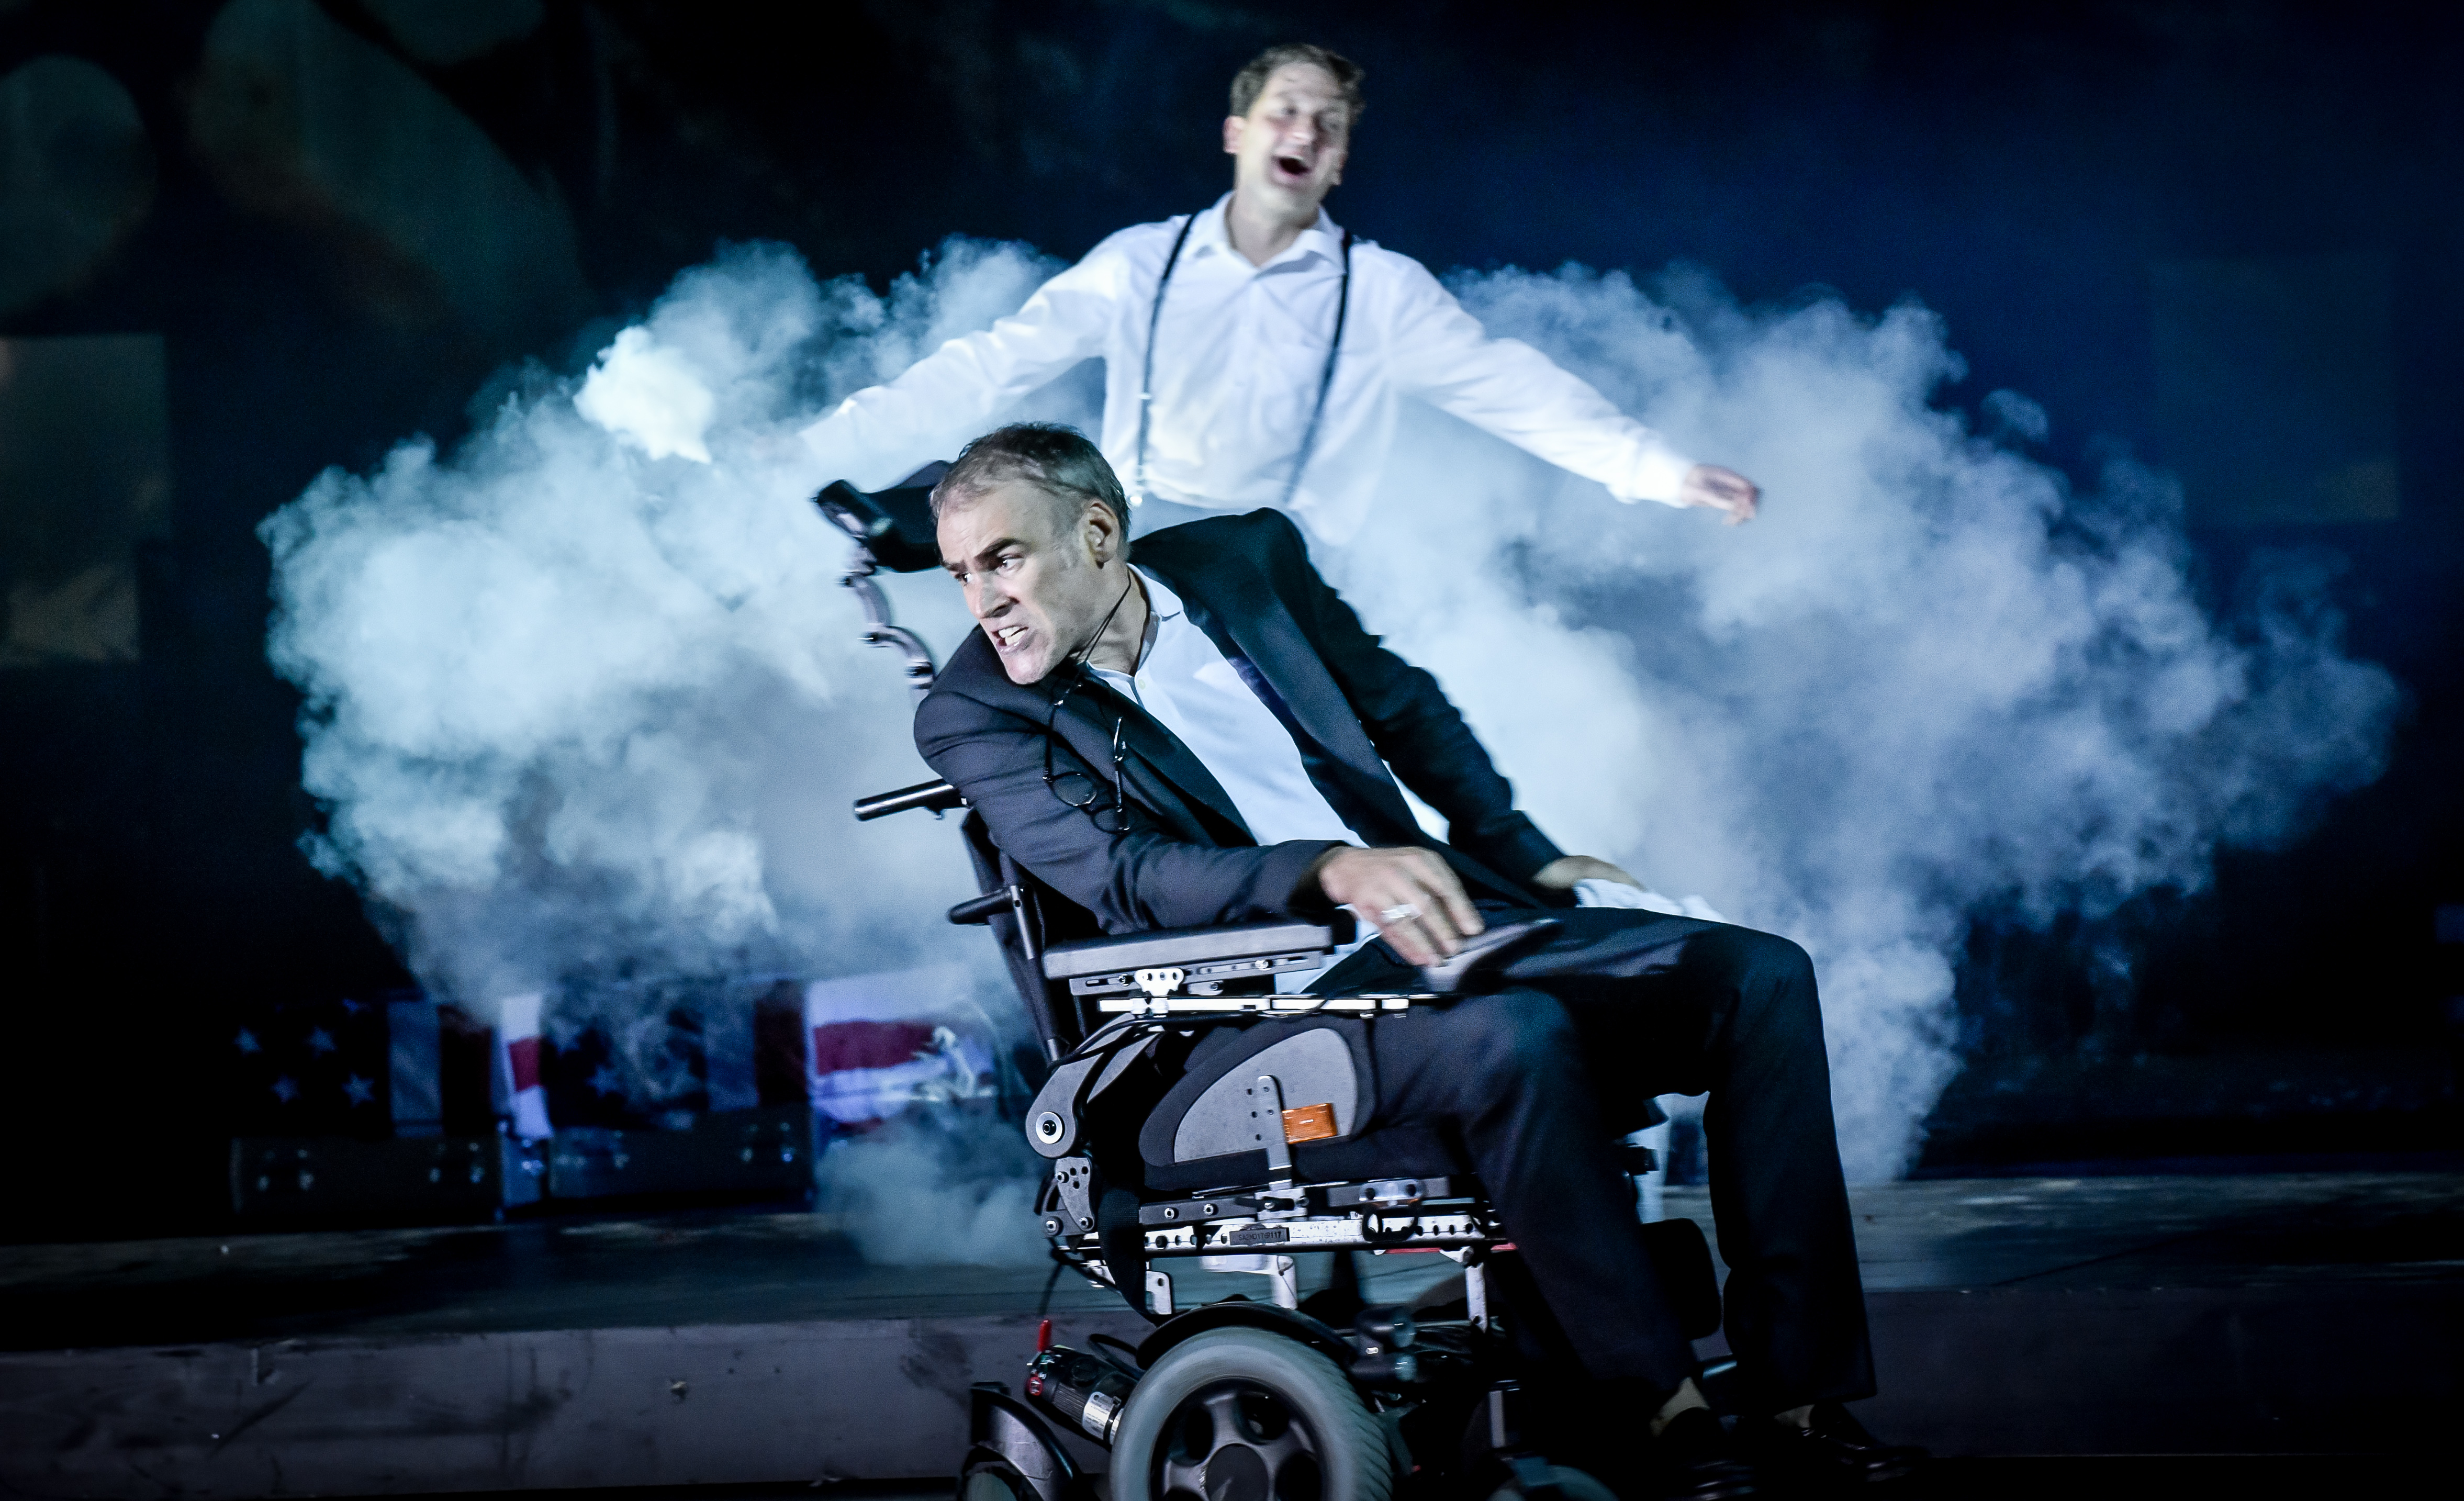 """In a scene from """"Reich des Todes"""", actor Sebastian Blomberg is sitting in an electric wheelchair; with actor Holger Stockhaus standing behind him, swathed in a cloud of fog."""